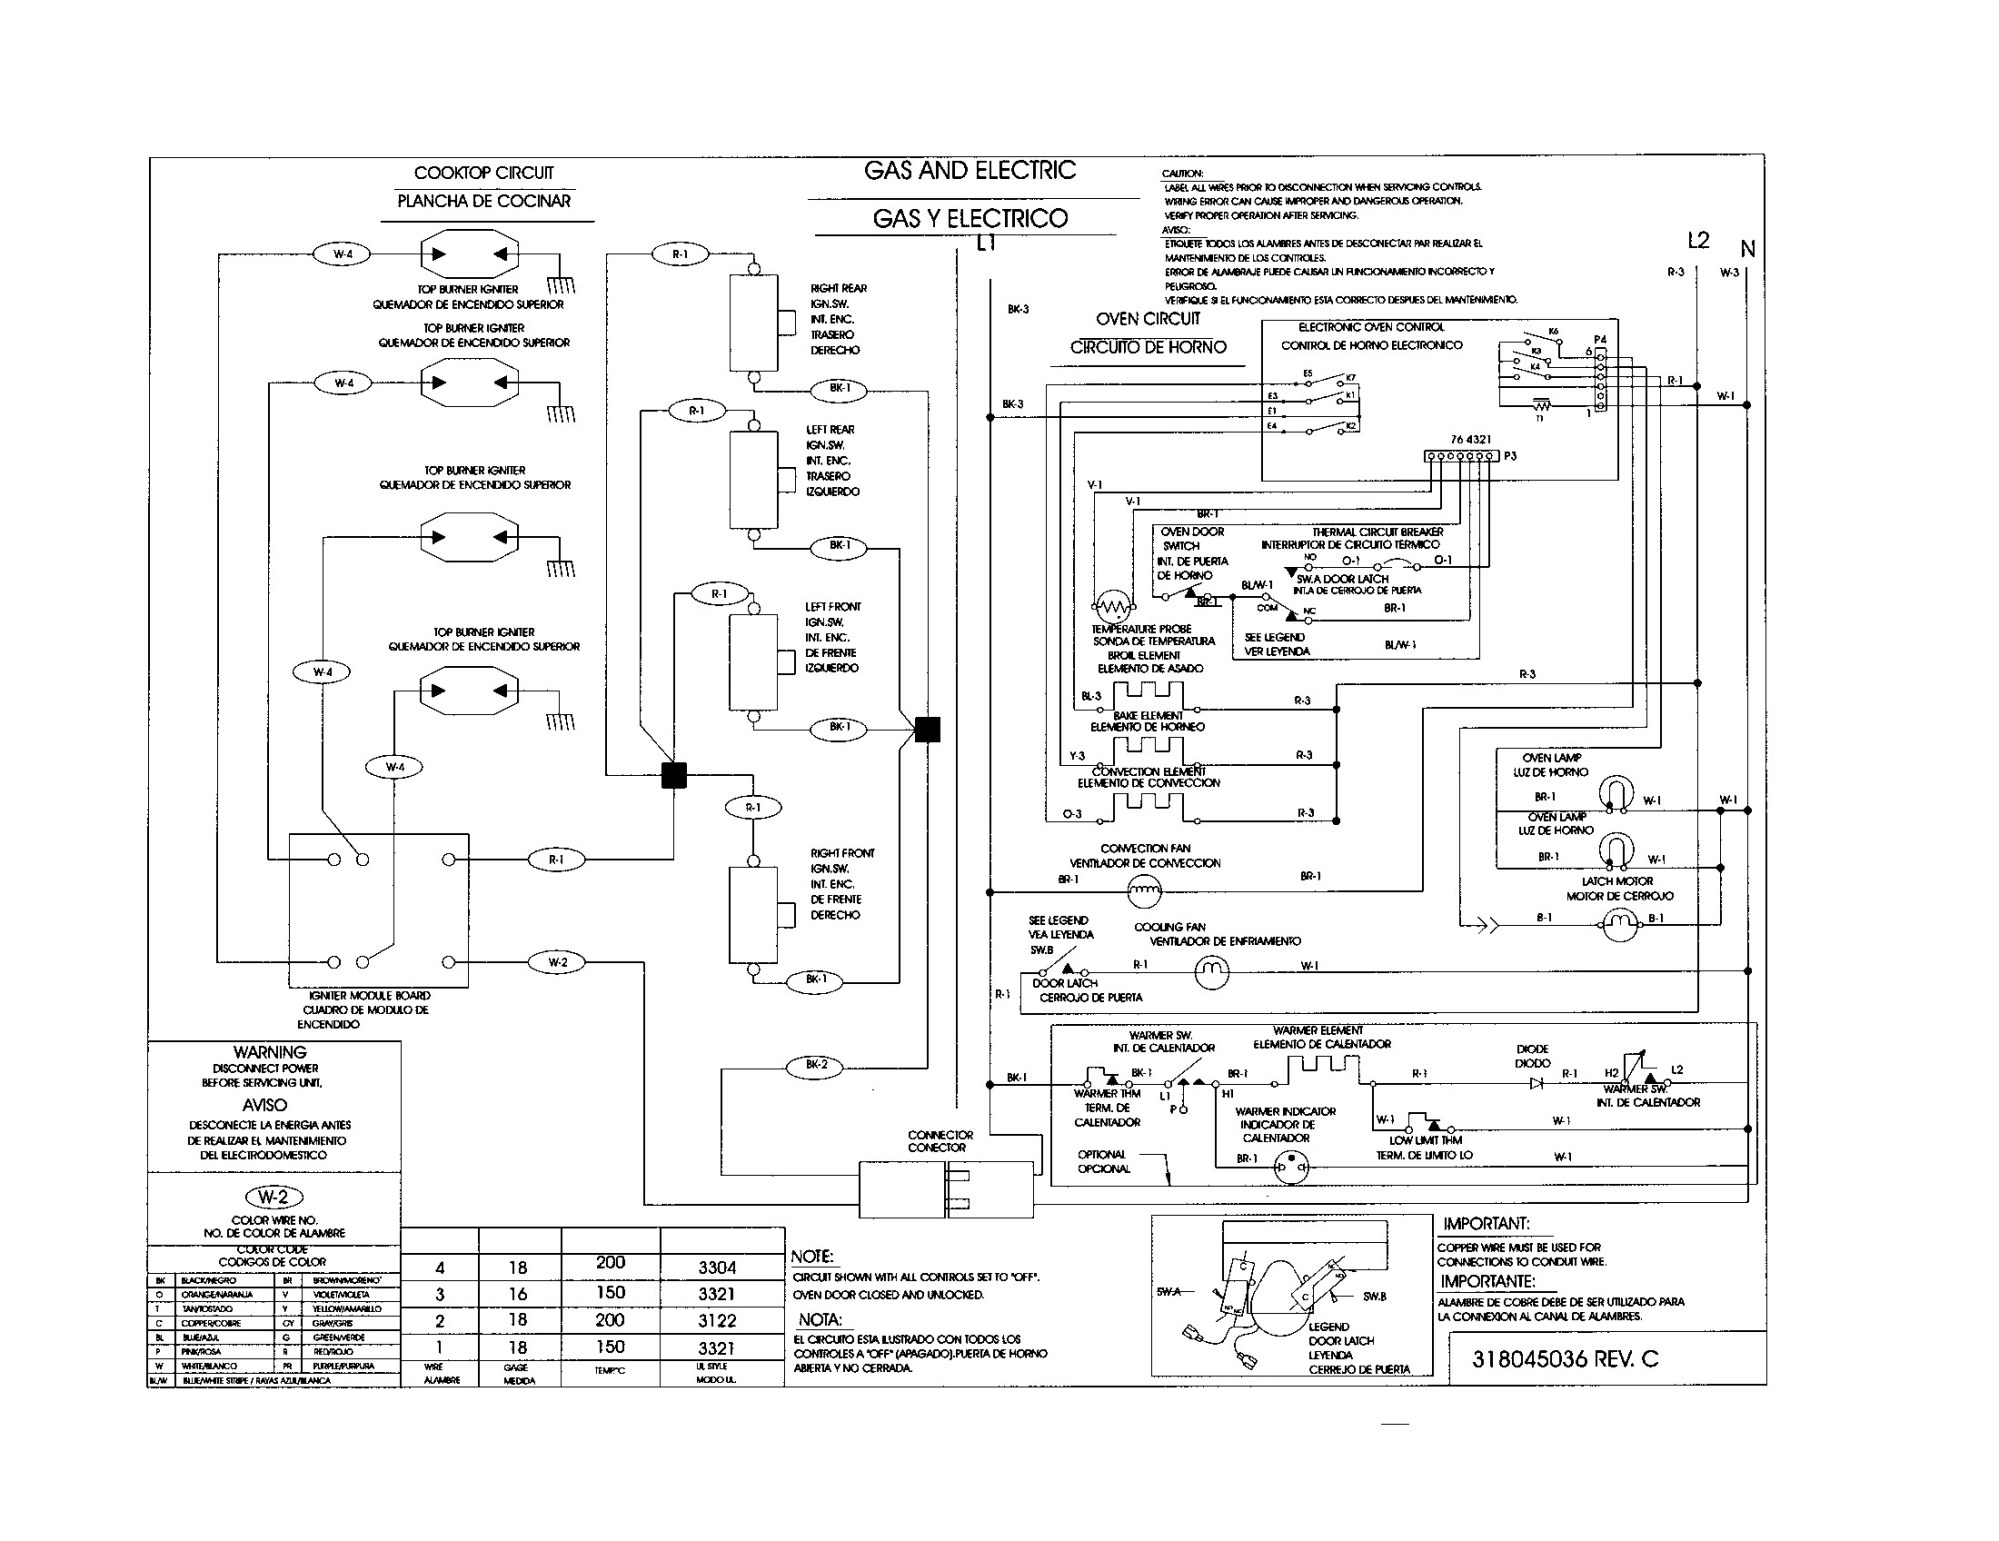 hight resolution of kenmore 3 prong dryer wiring diagram free download wiring diagrams lol kenmore 3 prong dryer wiring diagram free download